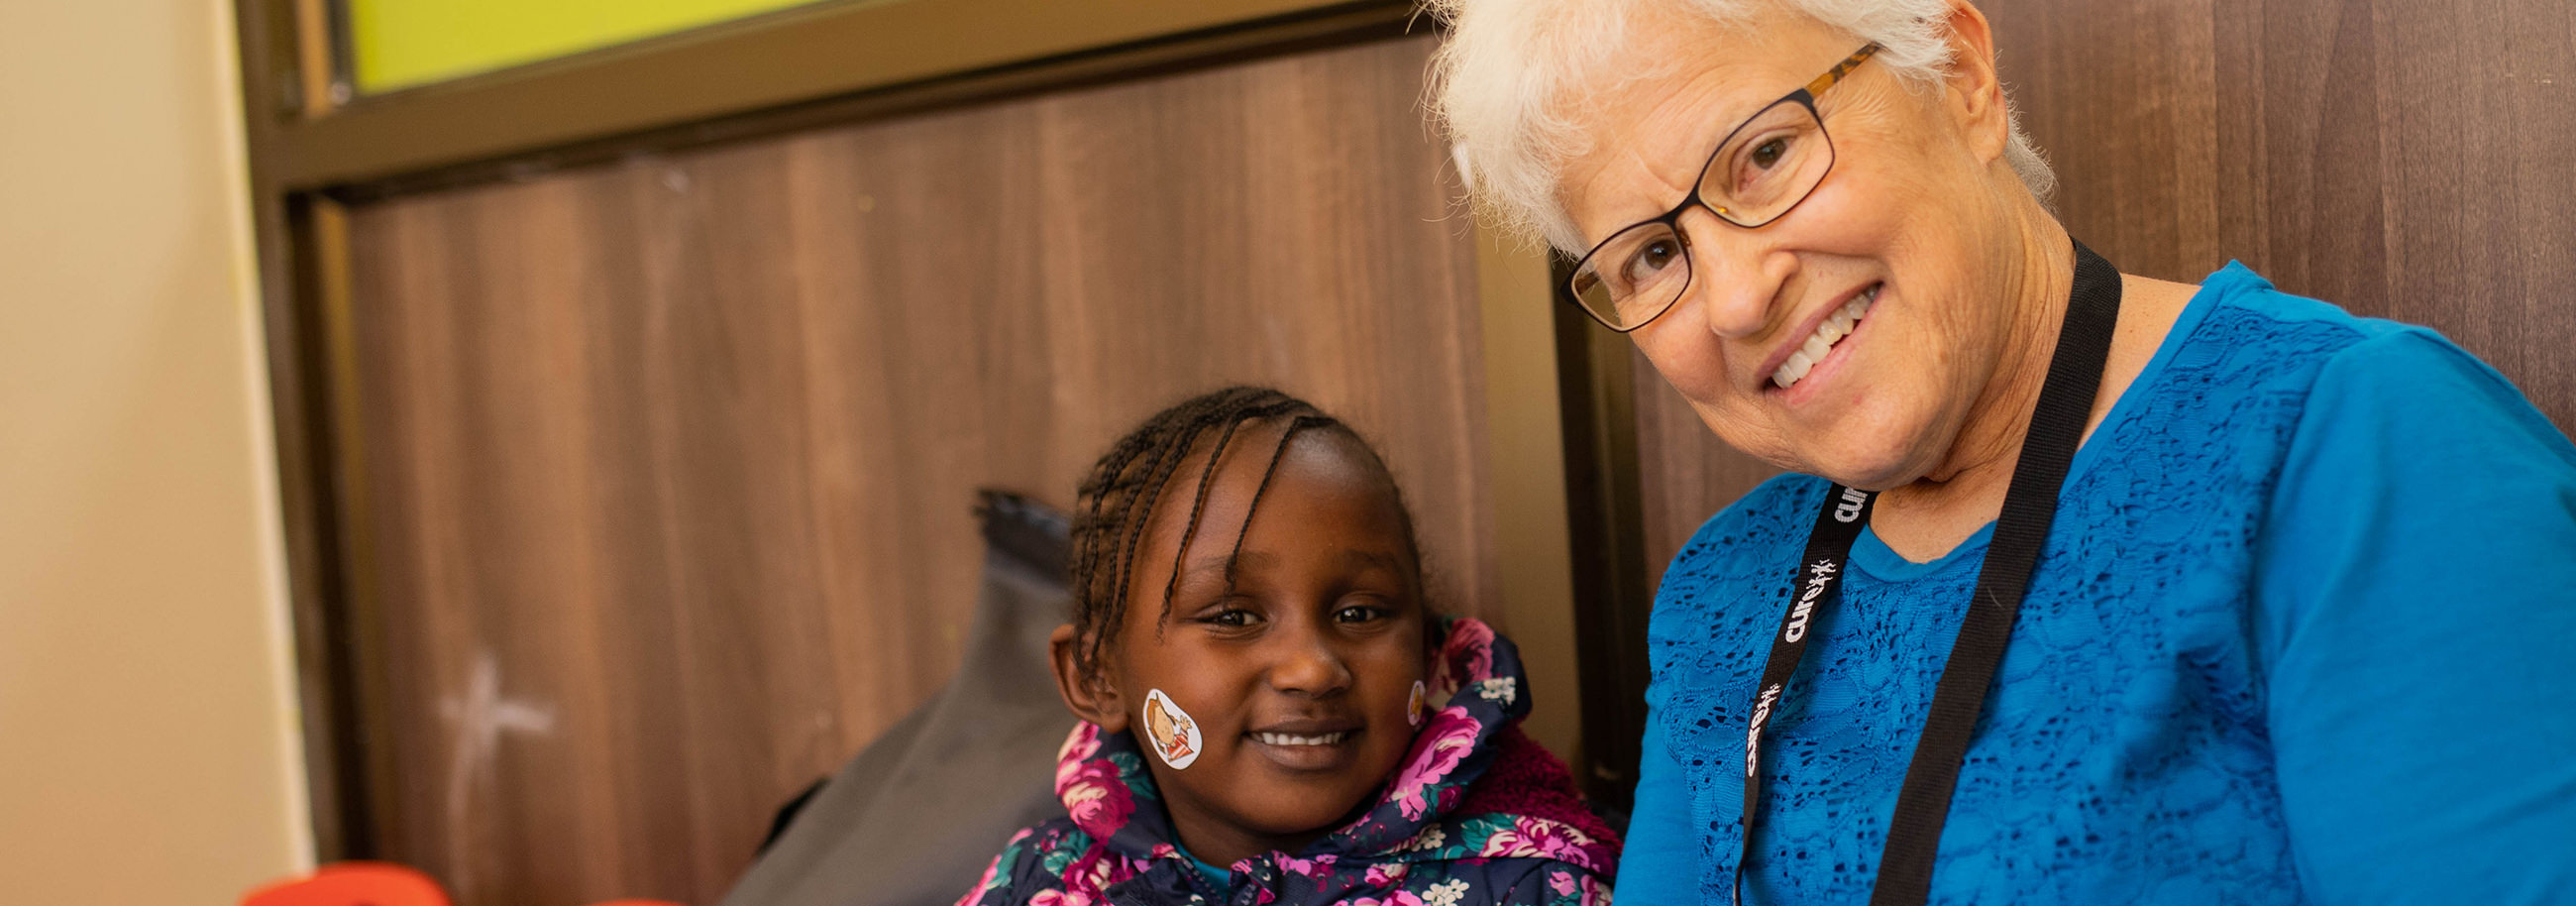 Darlene Smith connects with a young girl at the CURE Kenya hospital in Kijabe, Kenya.